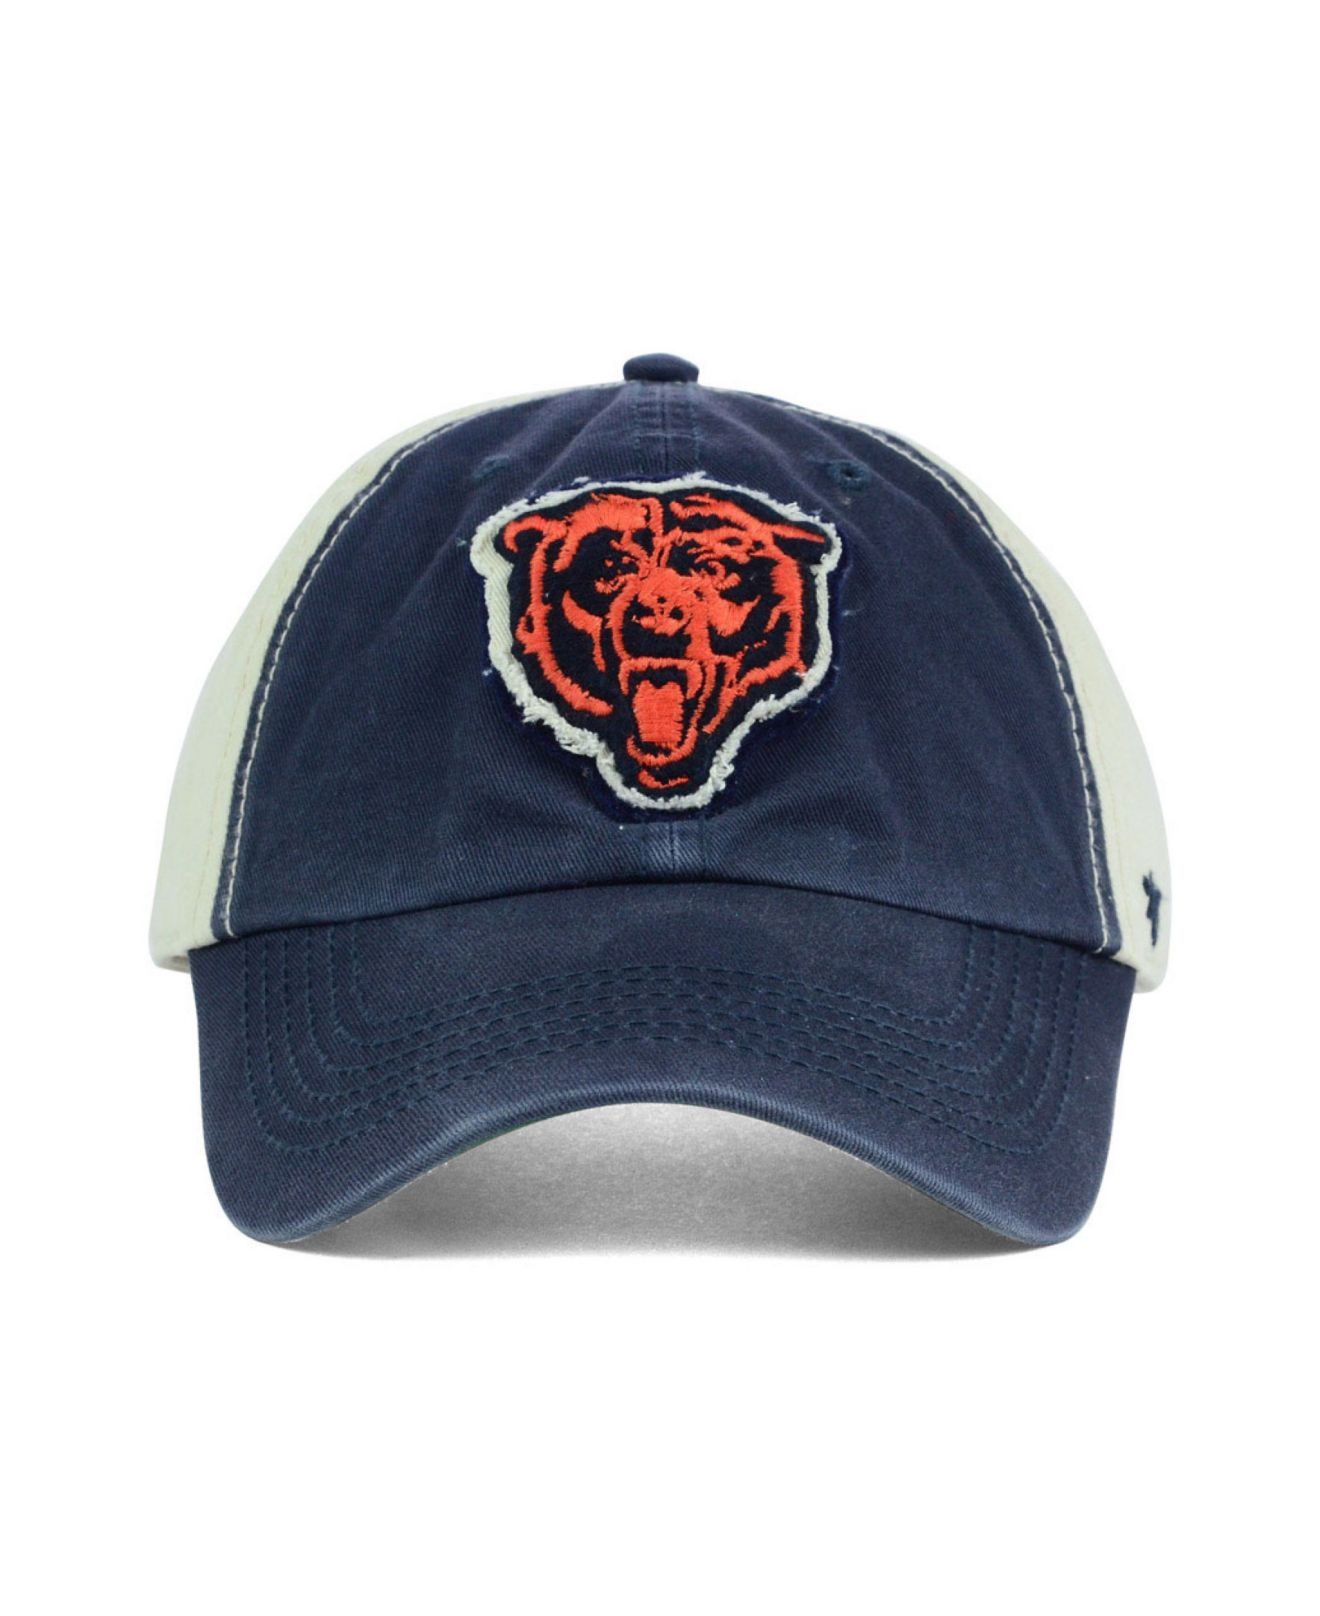 a9c6594e 47 Brand Blue Chicago Bears Nfl Derby Clean Up Cap for men